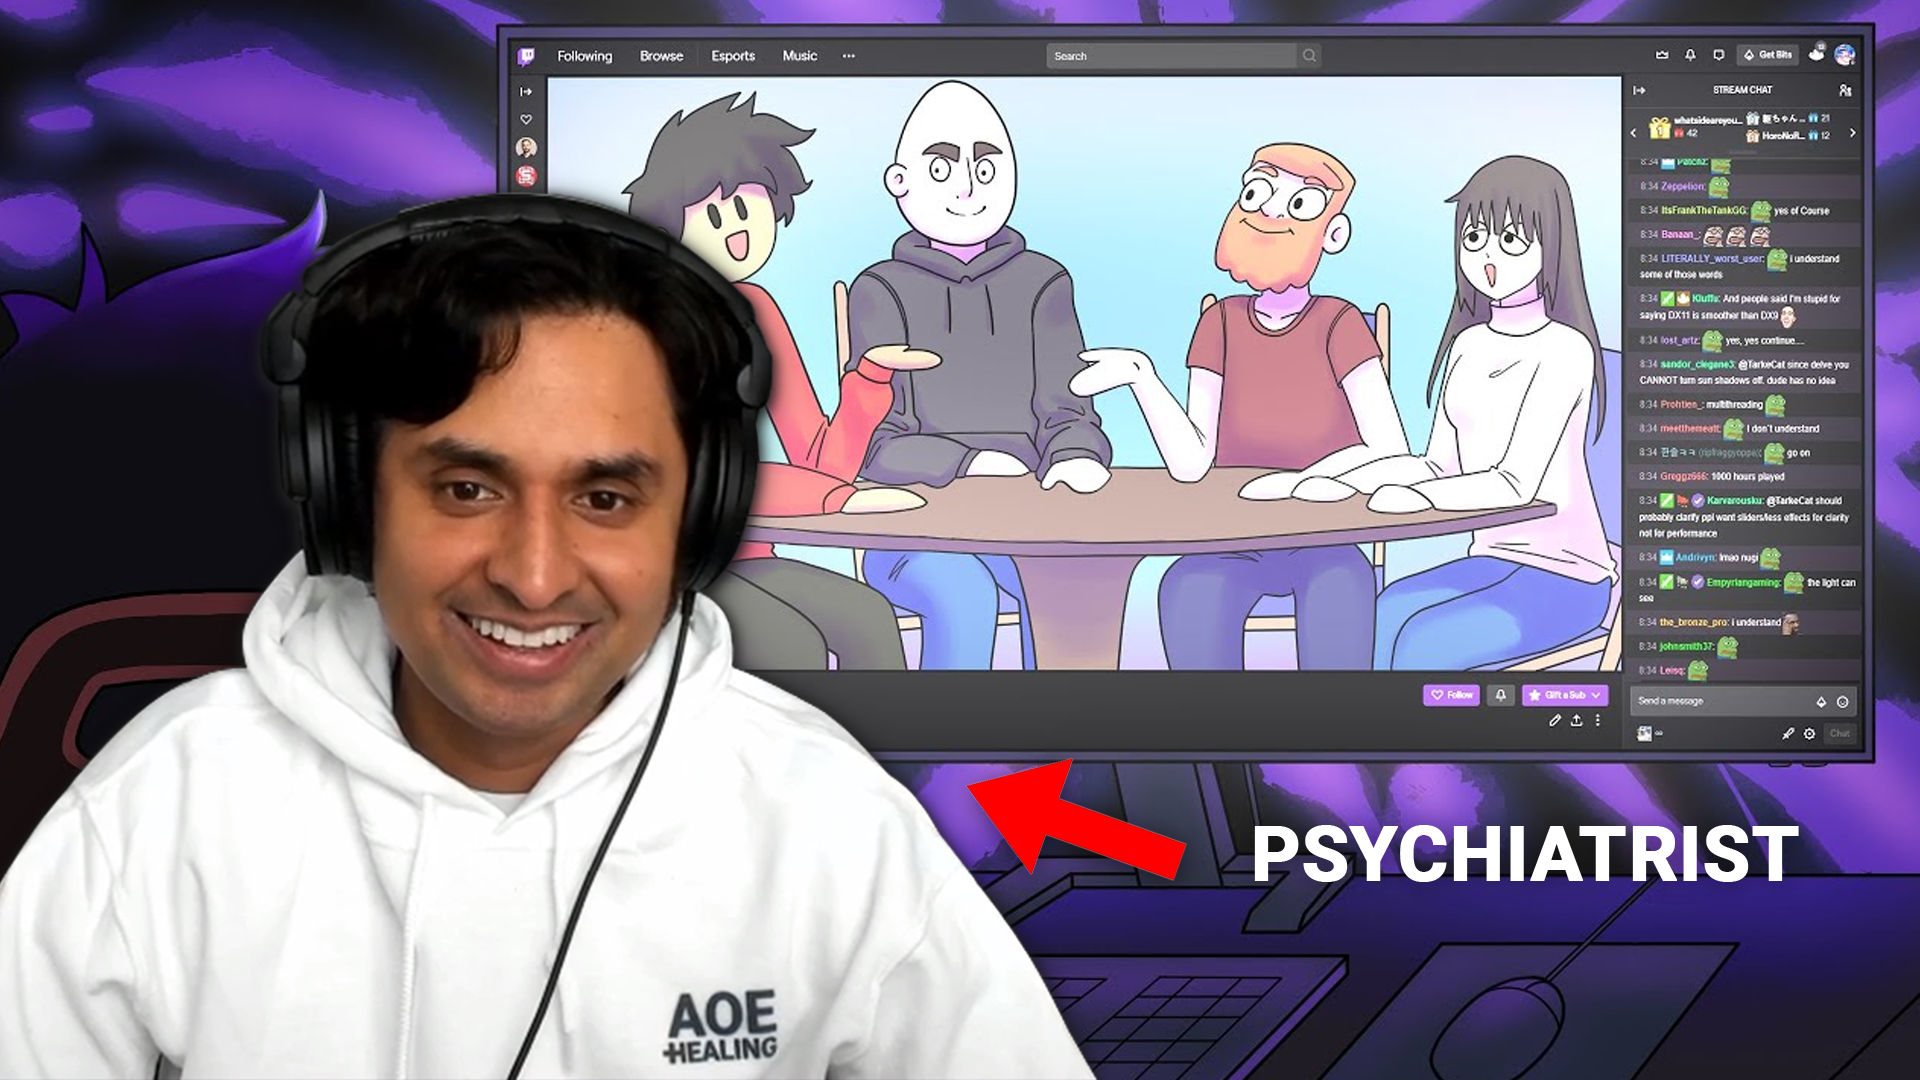 Parasocial Relationships on Twitch: A Psychiatrist's Perspective